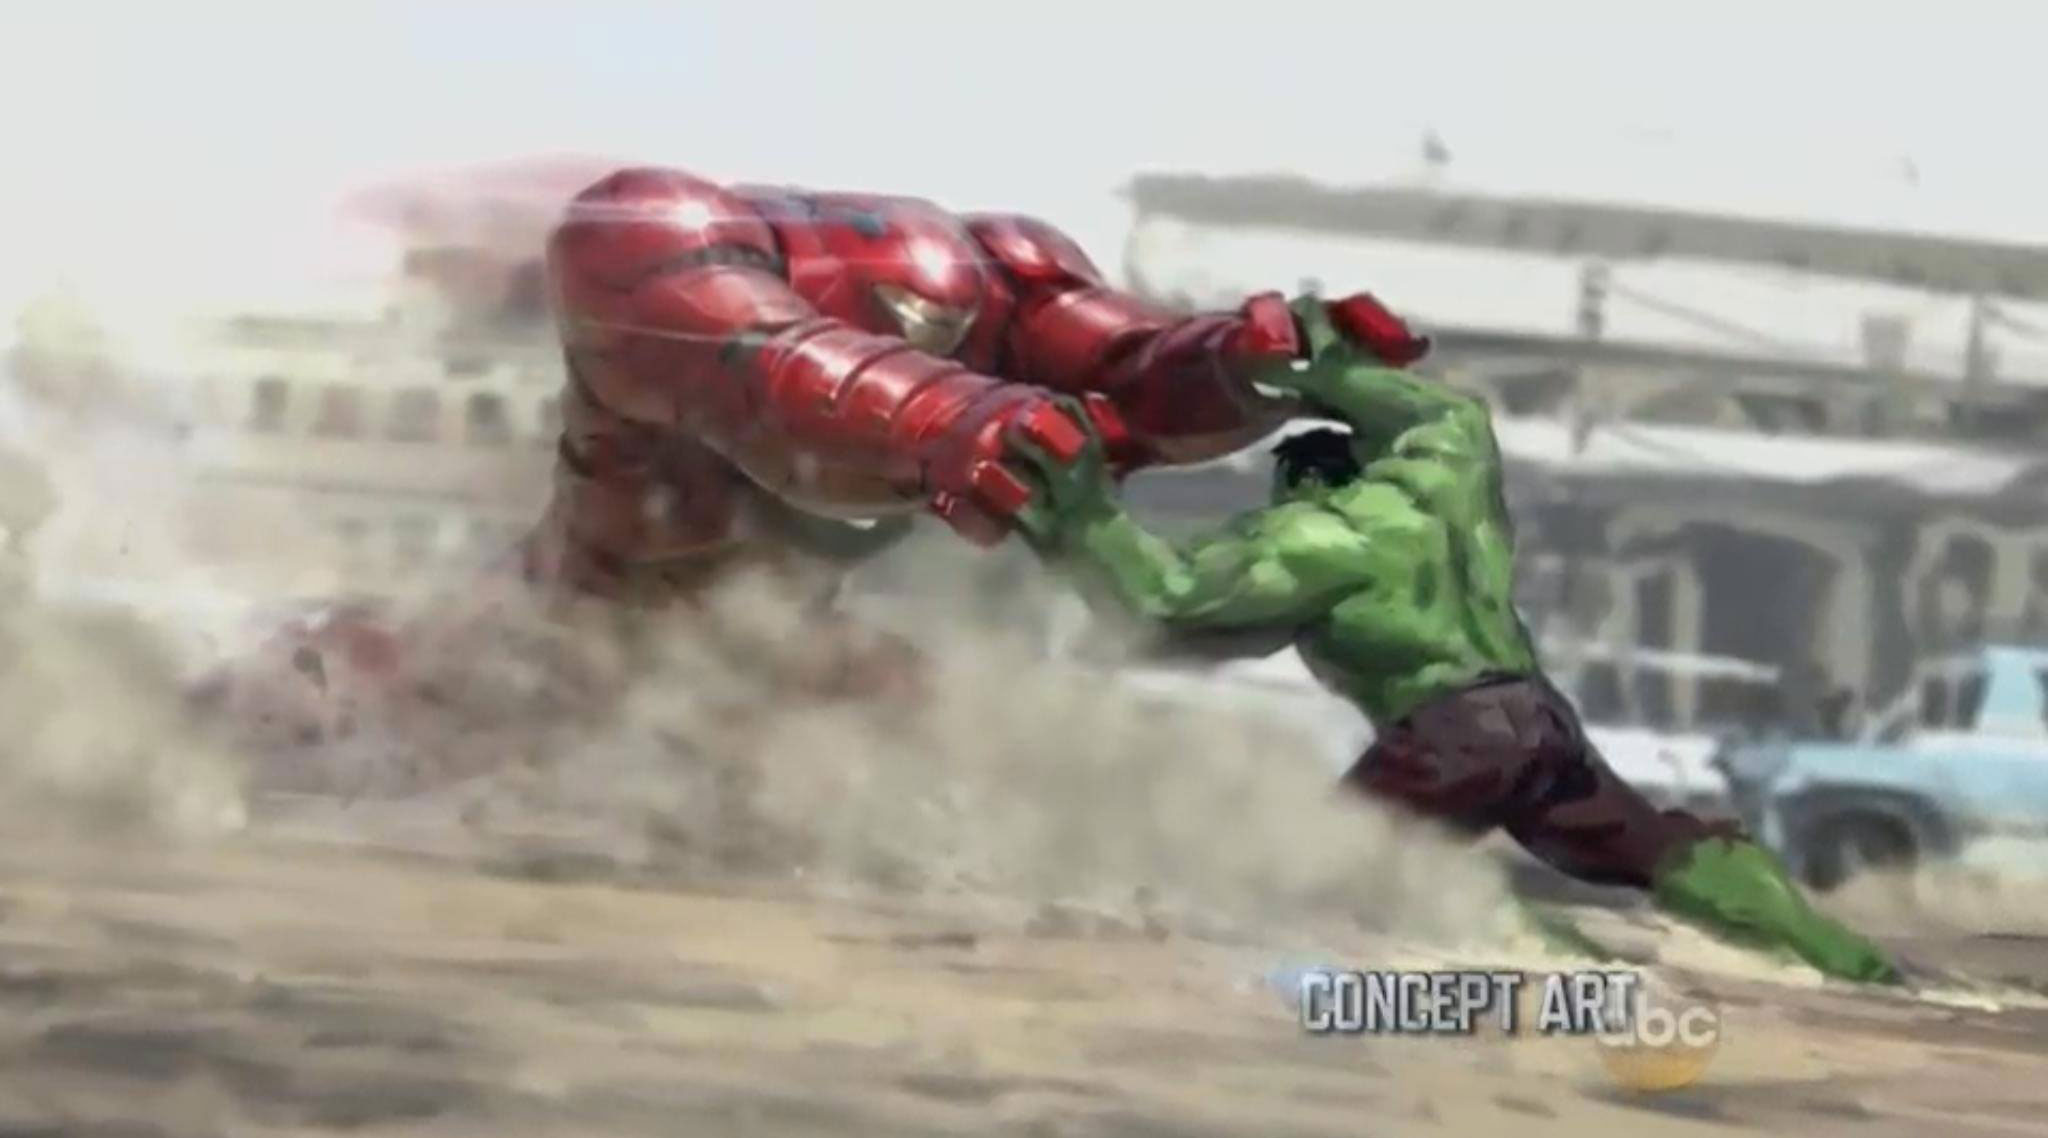 Concept art of Hulkbuster Iron Man Armour vs. The Hulk